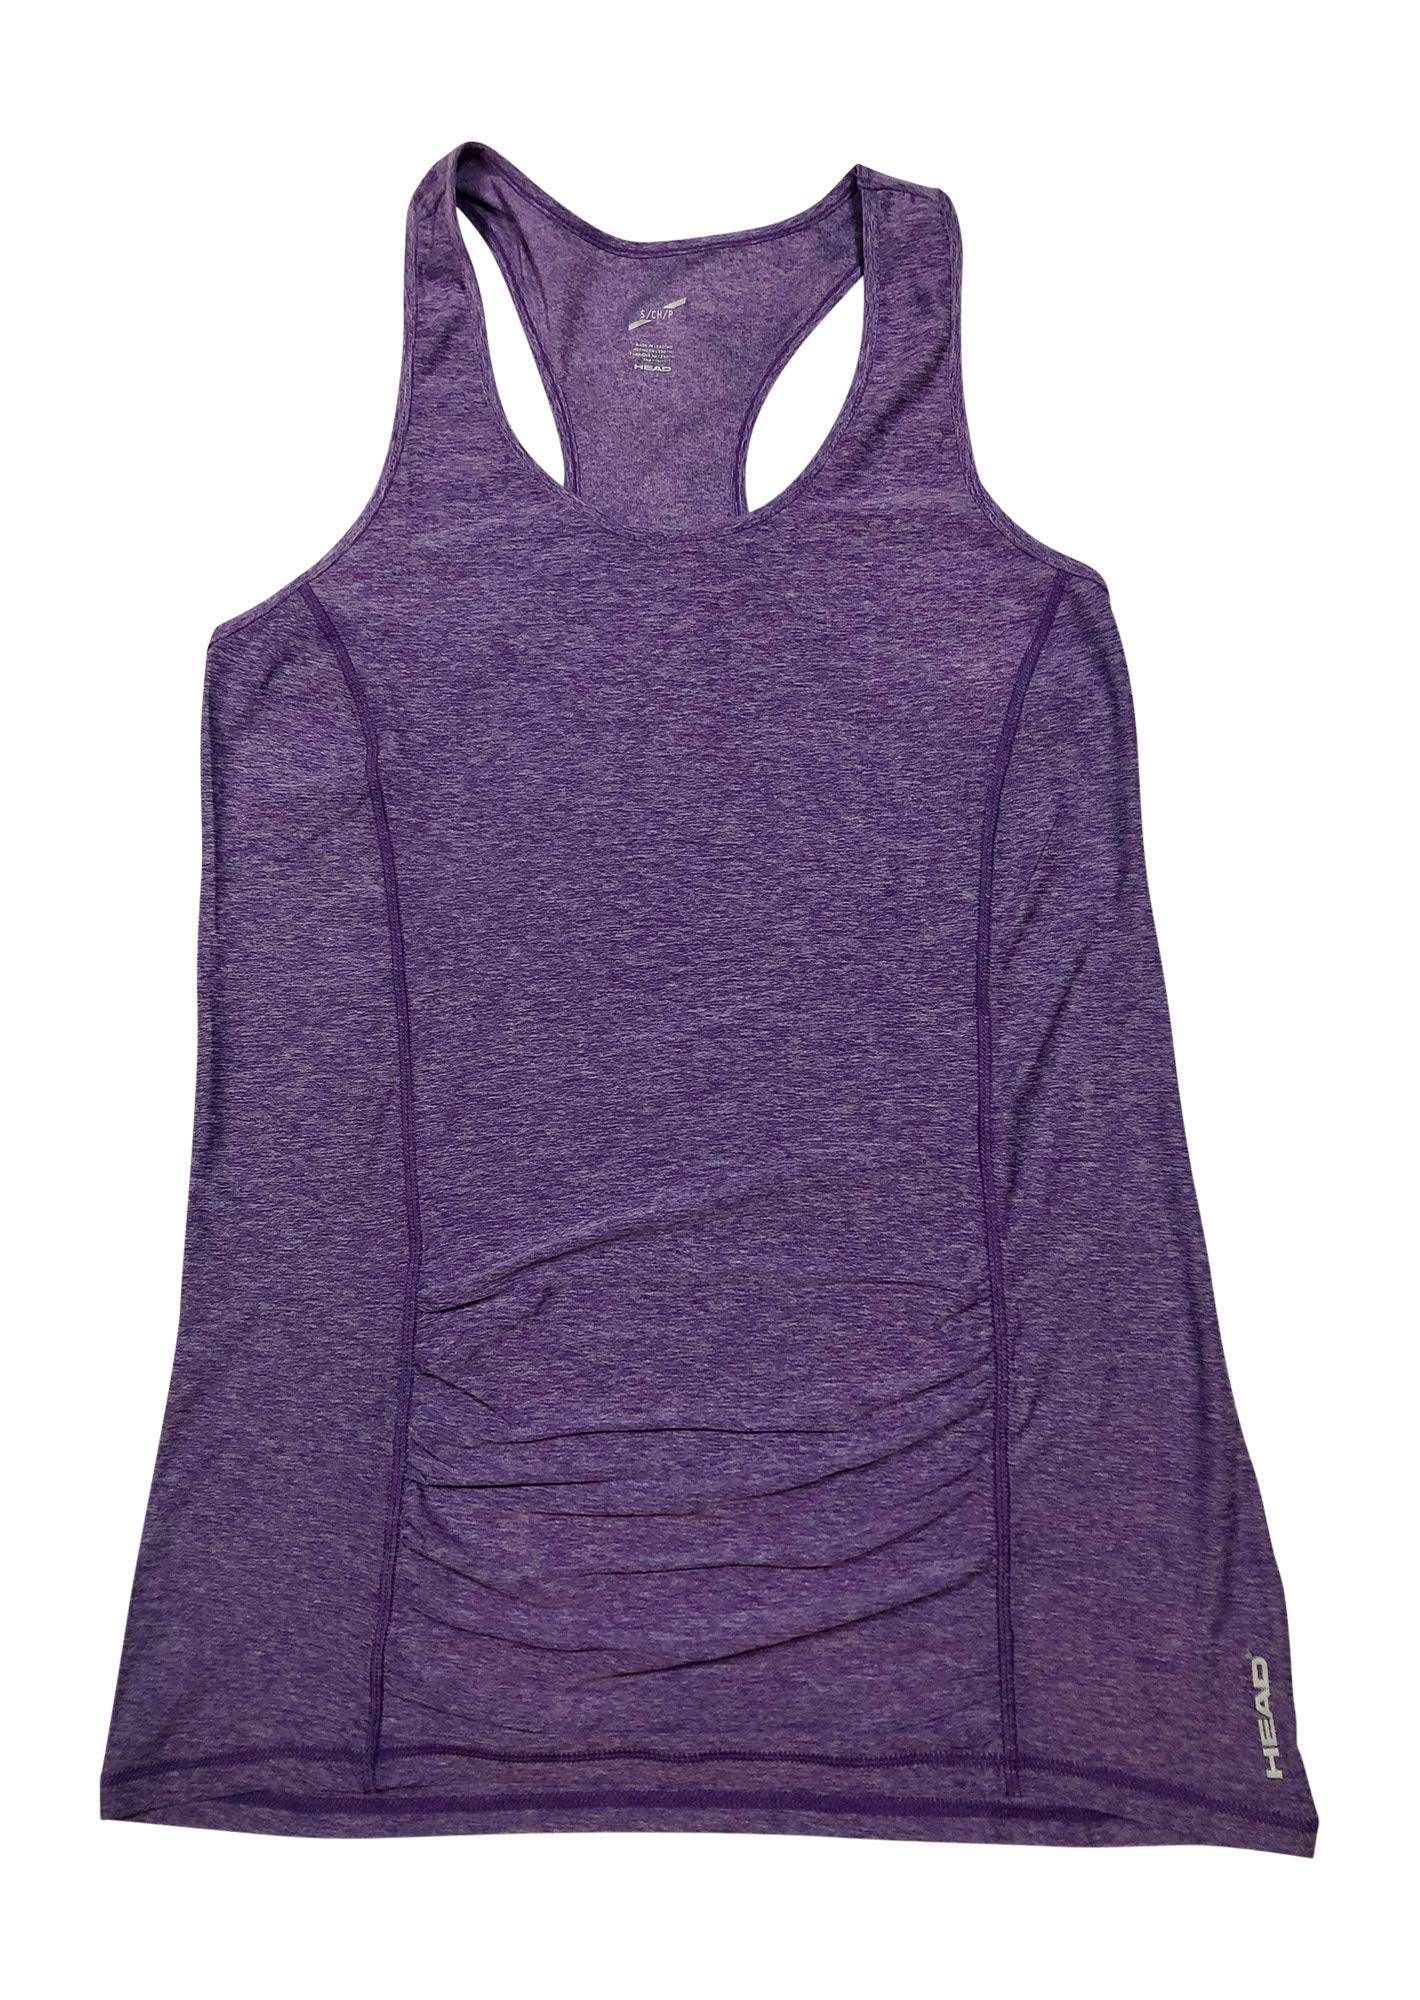 HEAD Women's Racerback Tank Top - Sleeveless Performance Activewear Shirt w/Open Back Options - Chive Blossom Heather Perfect Match, X-Small